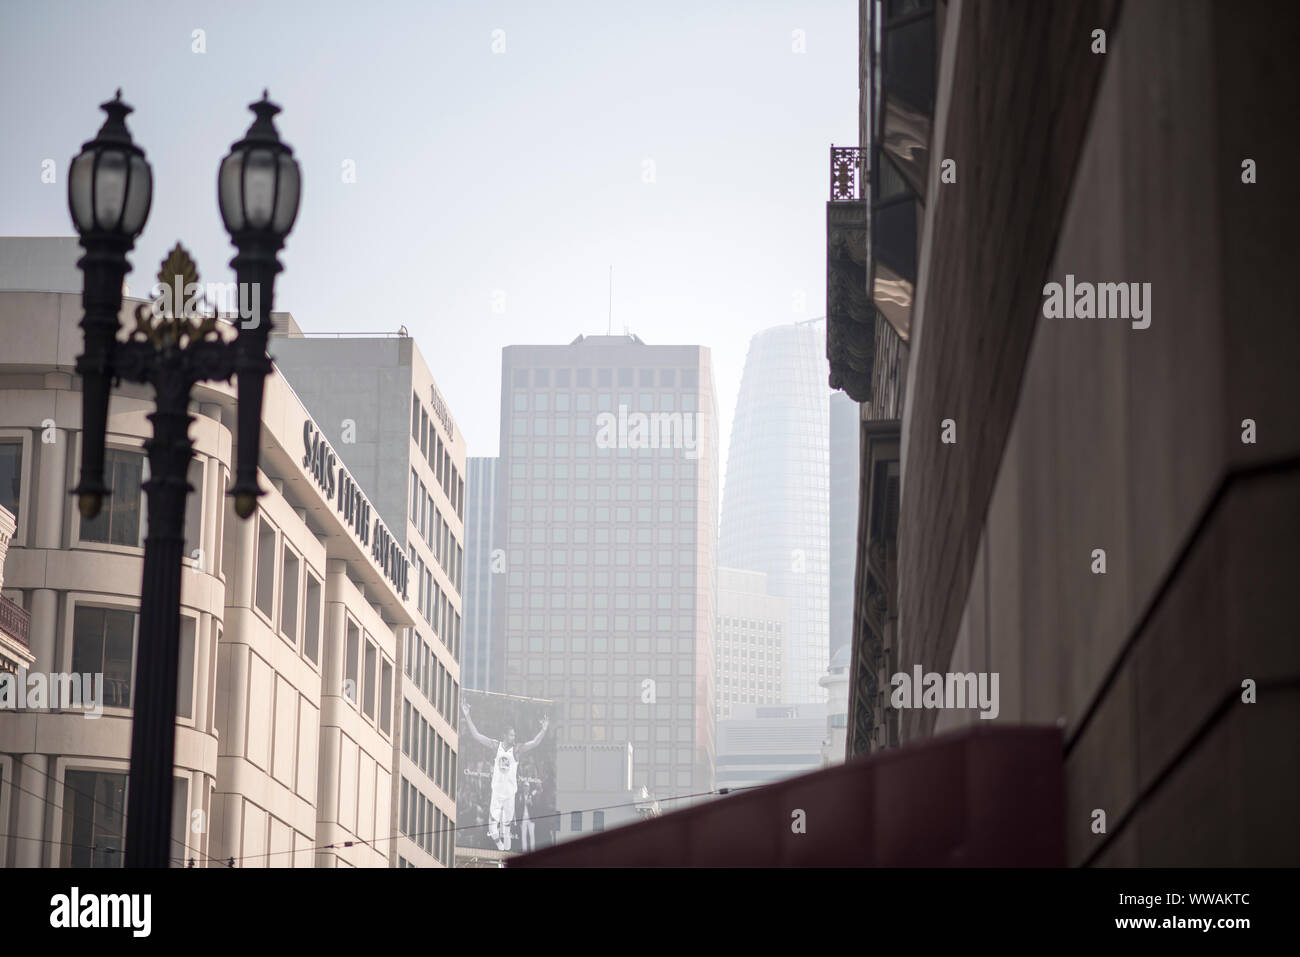 San Francisco, California - November 17, 2018: Smoke from the Camp Fire in Northern California fills the sky of Union Square in San Francisco. Stock Photo